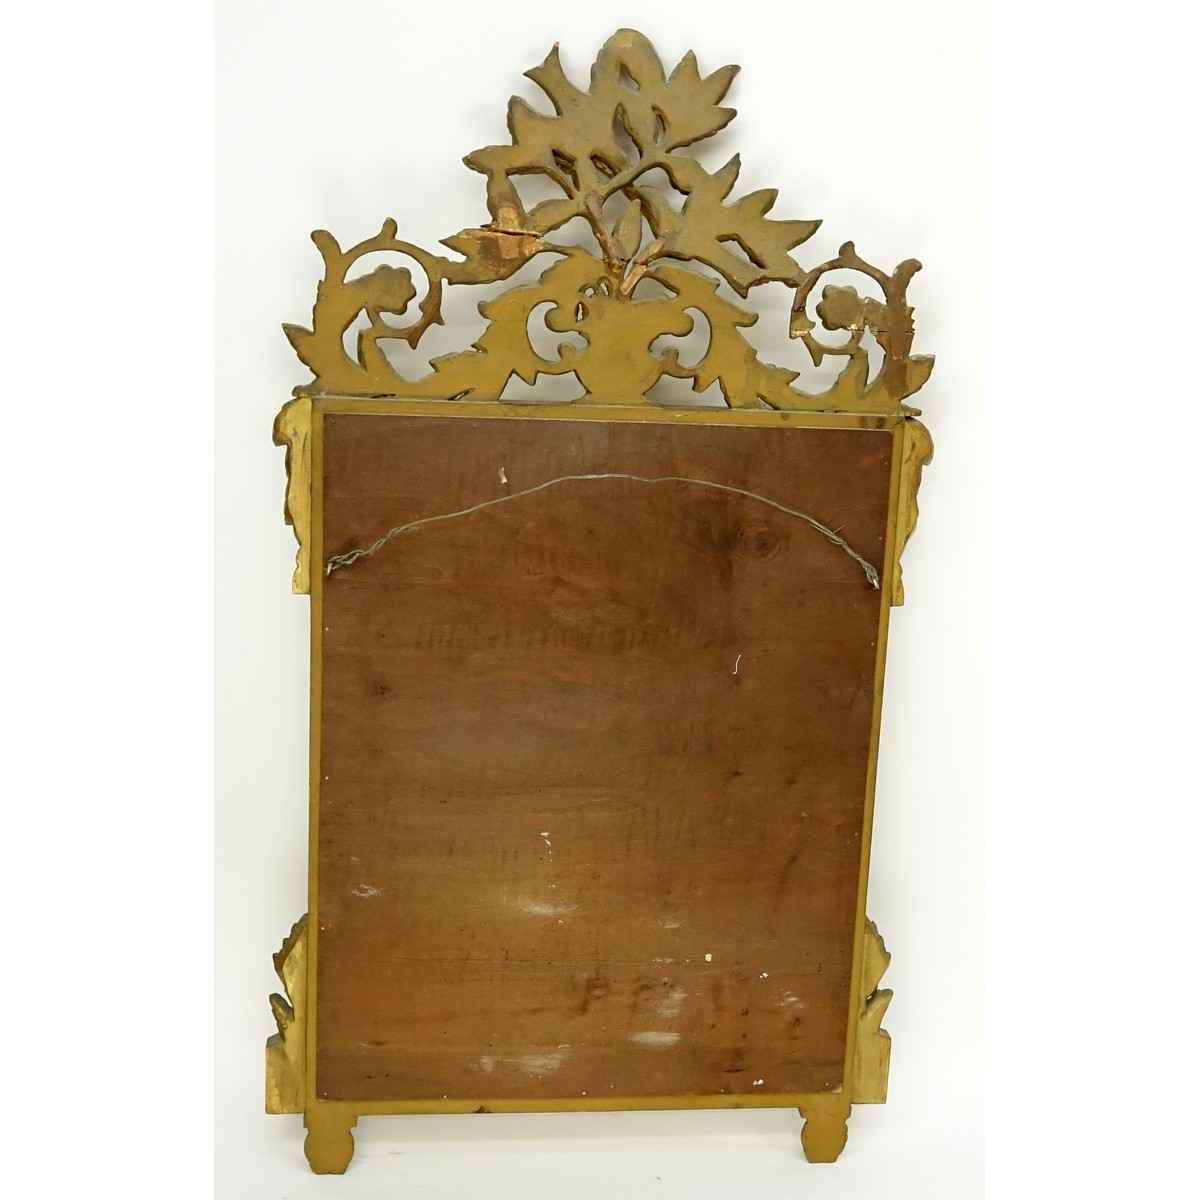 20th Century Carved Gilt Wood Decorative Mirror. Unsigned.